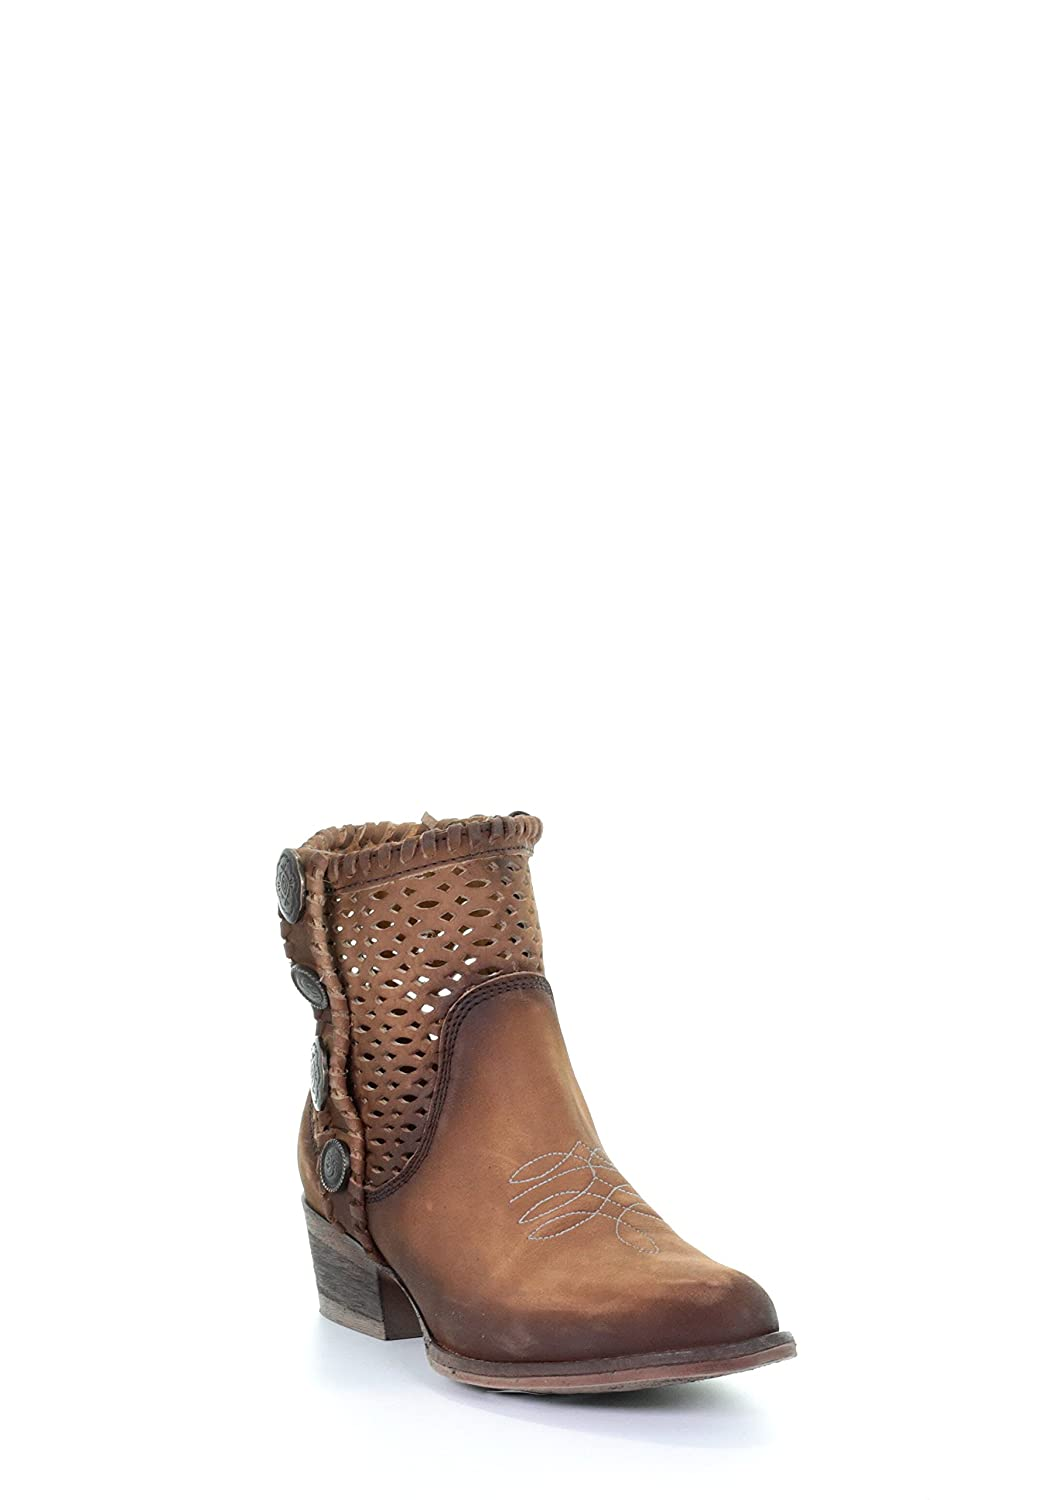 Circle G Women's Cutout Studs Round Toe Leather Western Ankle Cowboy Boots - Chocolate Brown